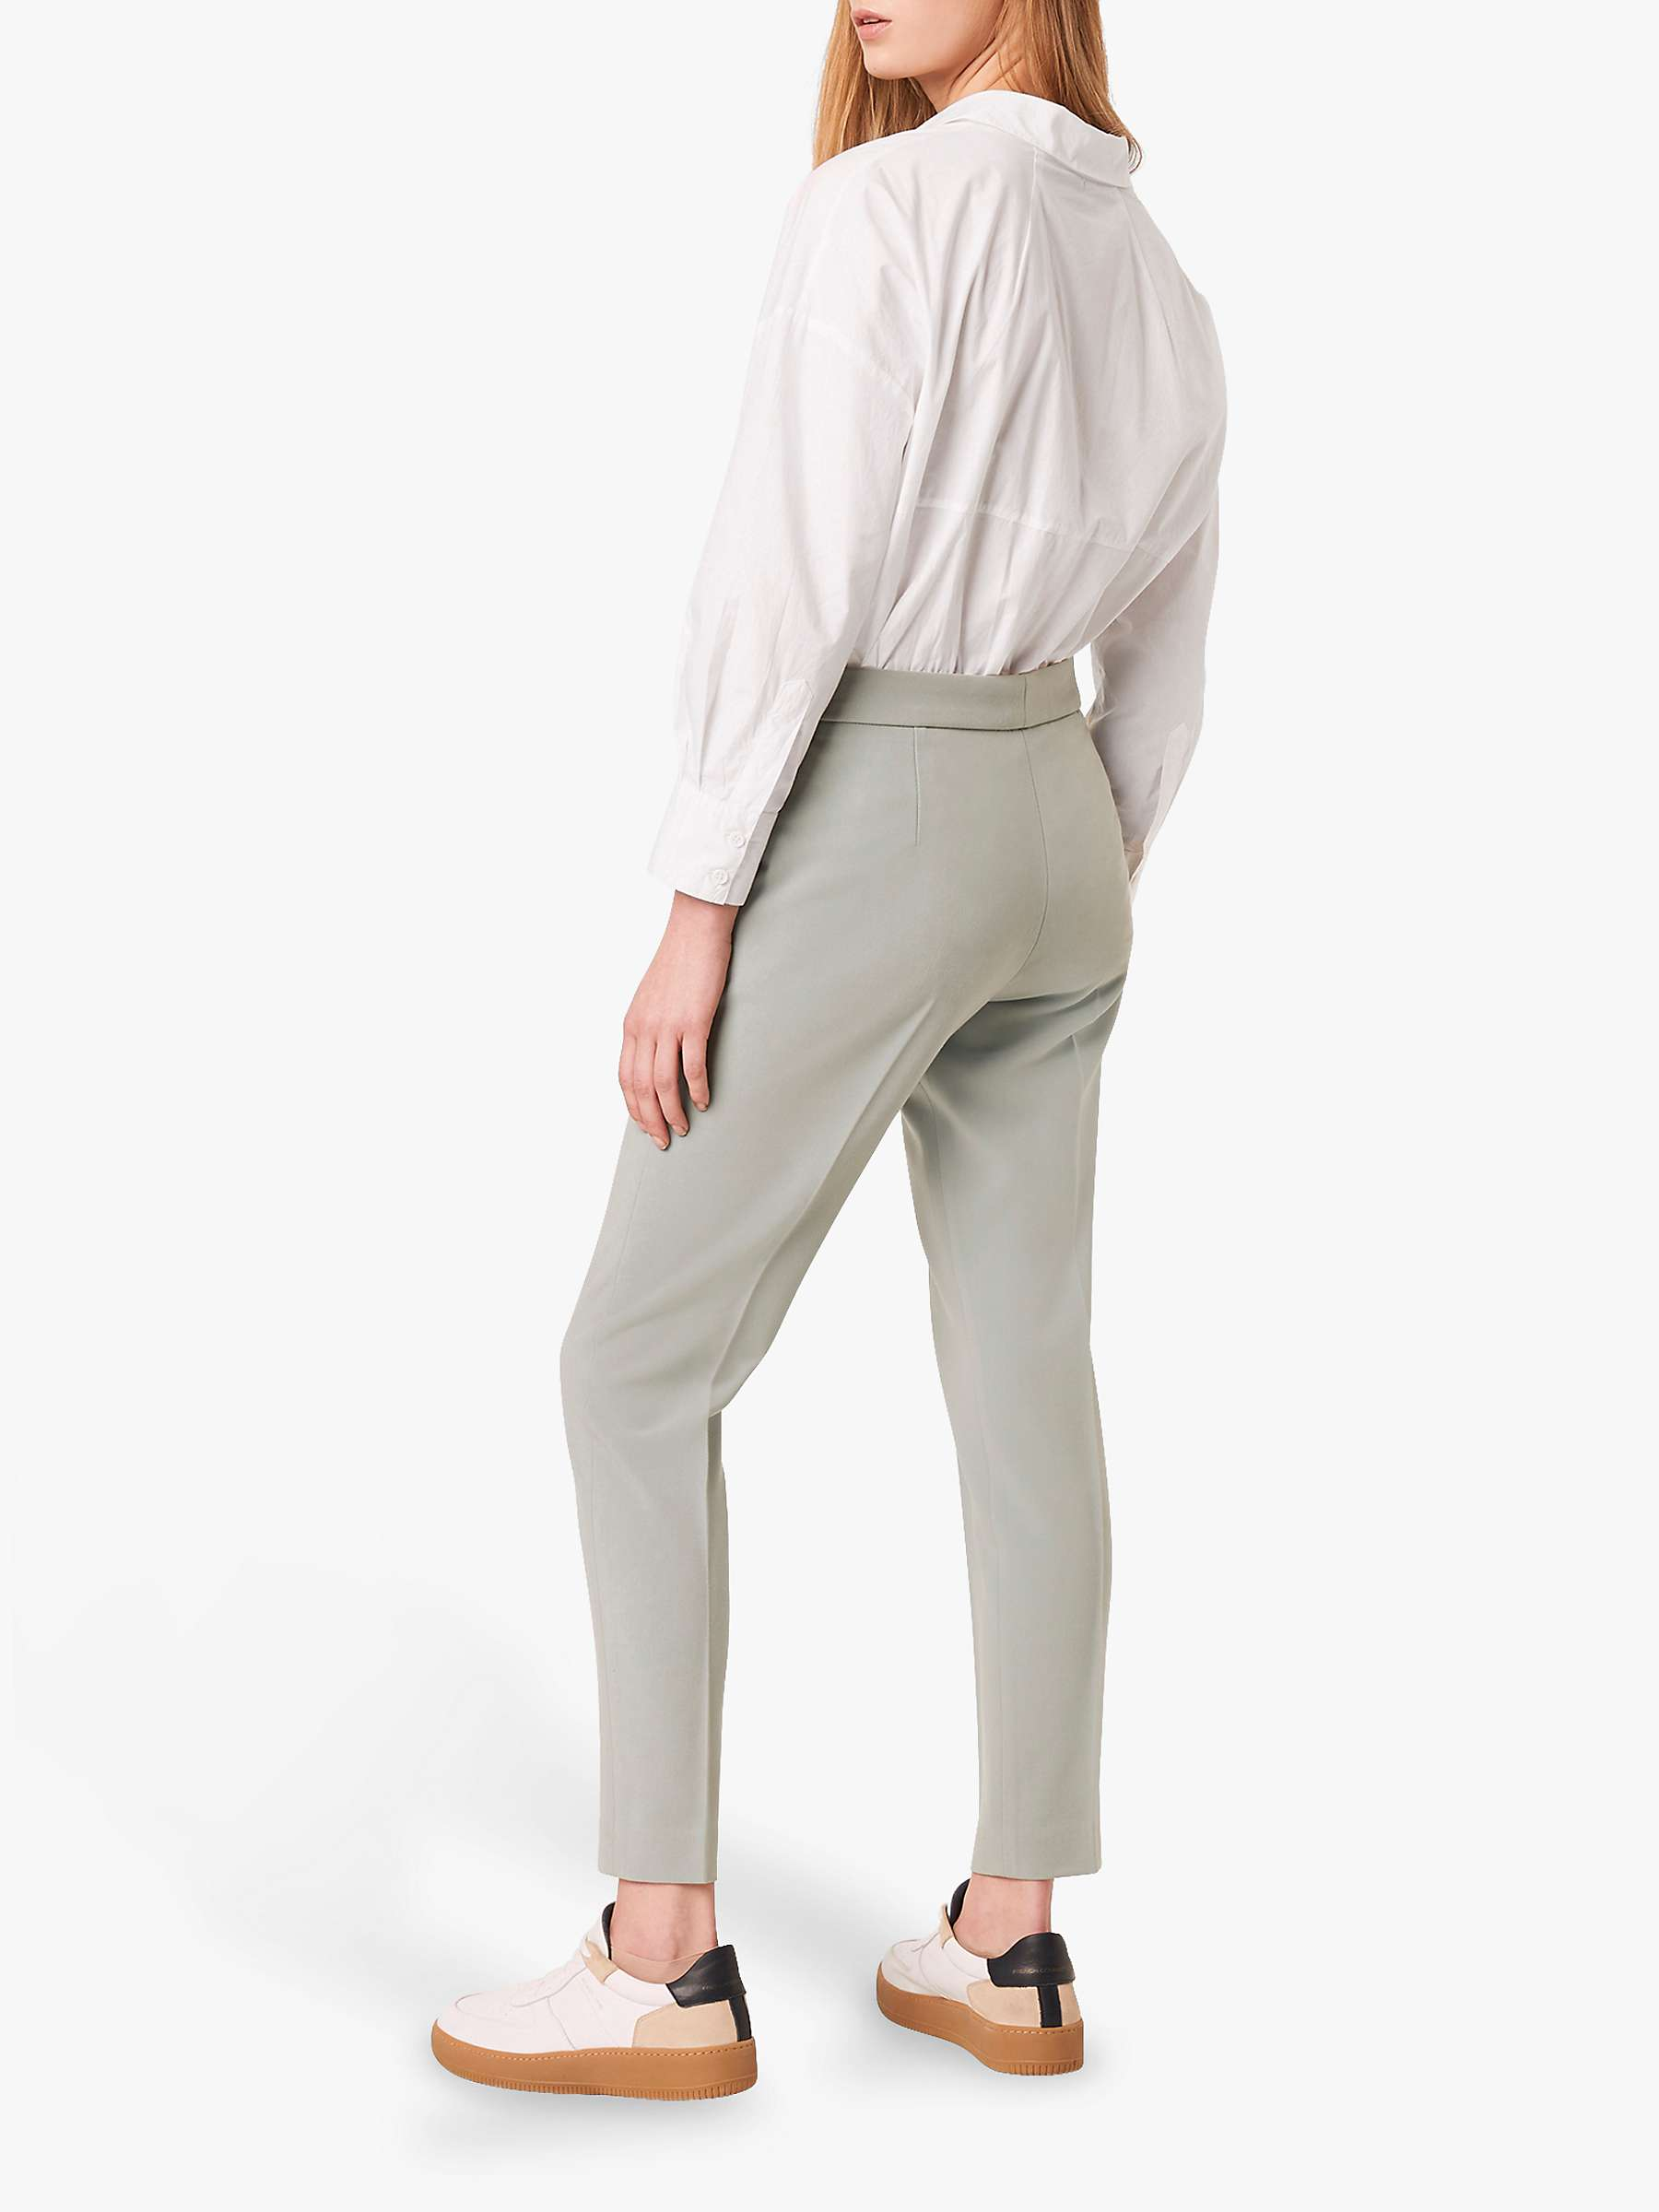 Boh Whisper Tailored Trousers in Silver Blue by French Connection